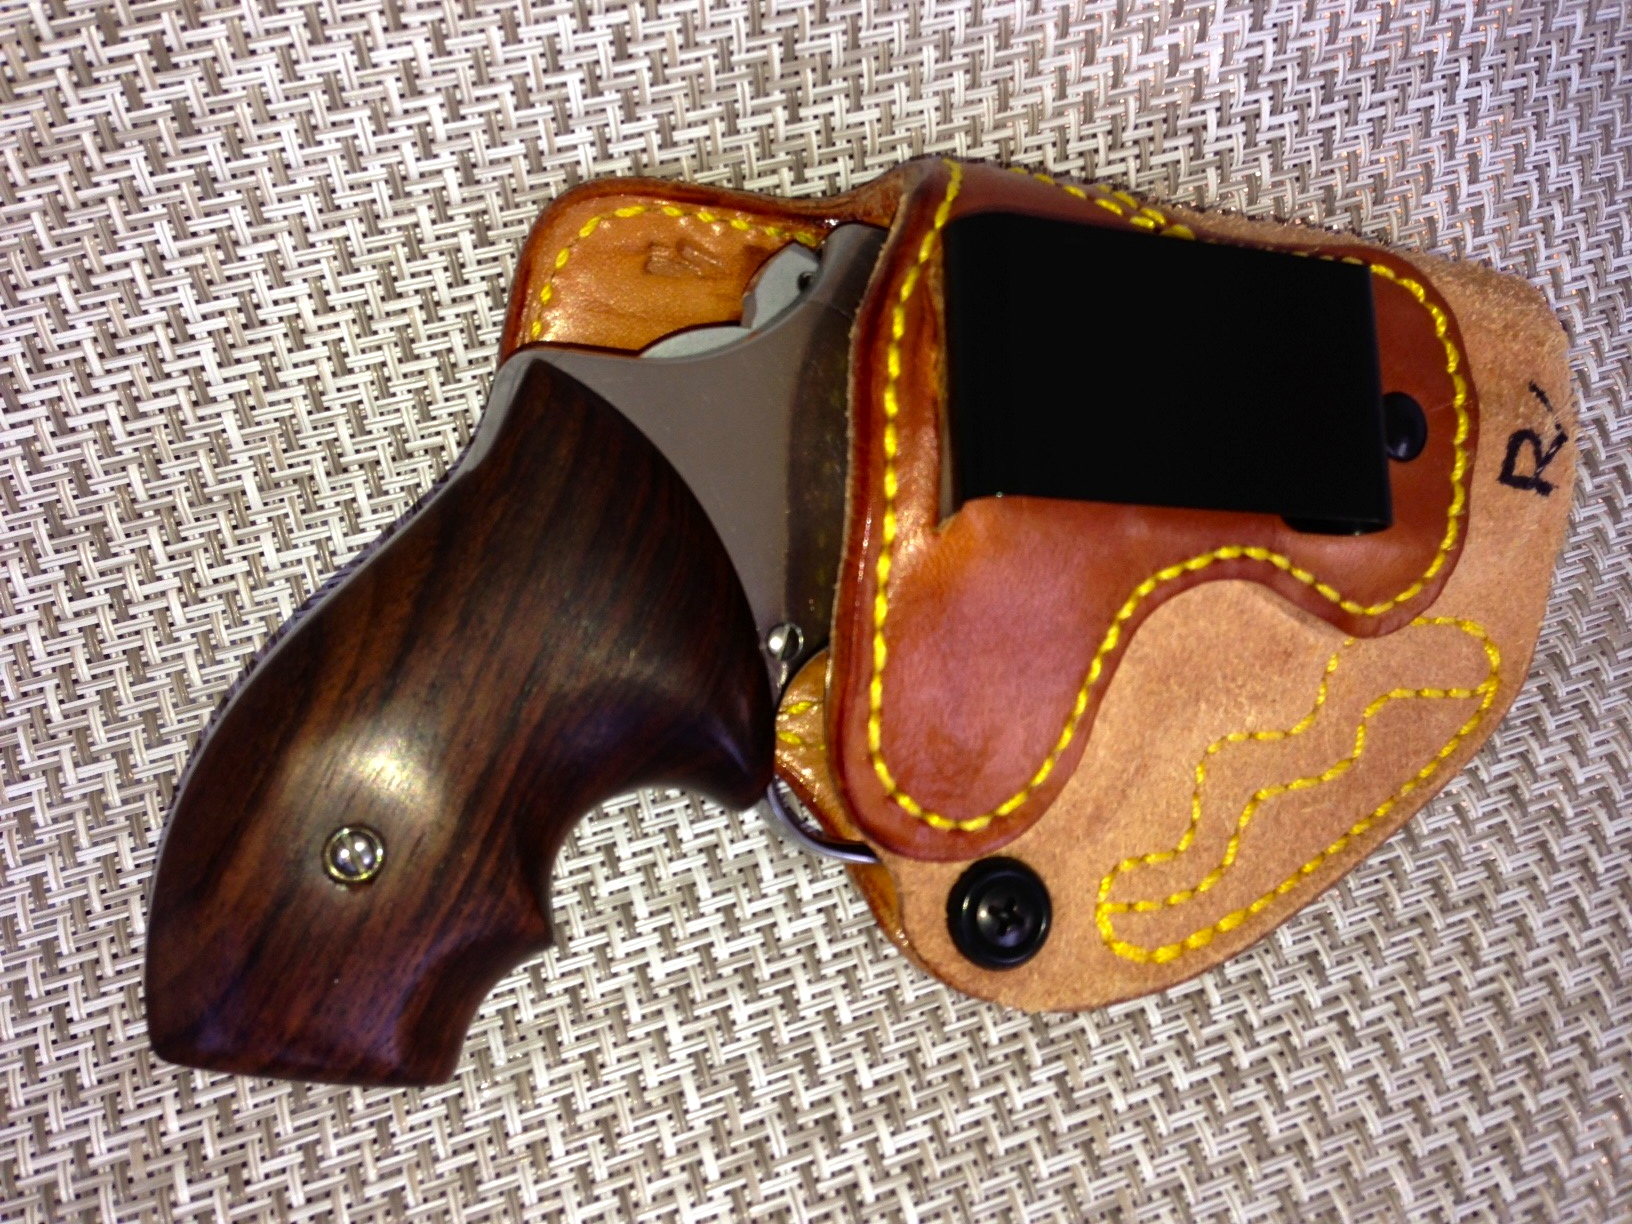 Searching for holster - 38 Special J-Frame